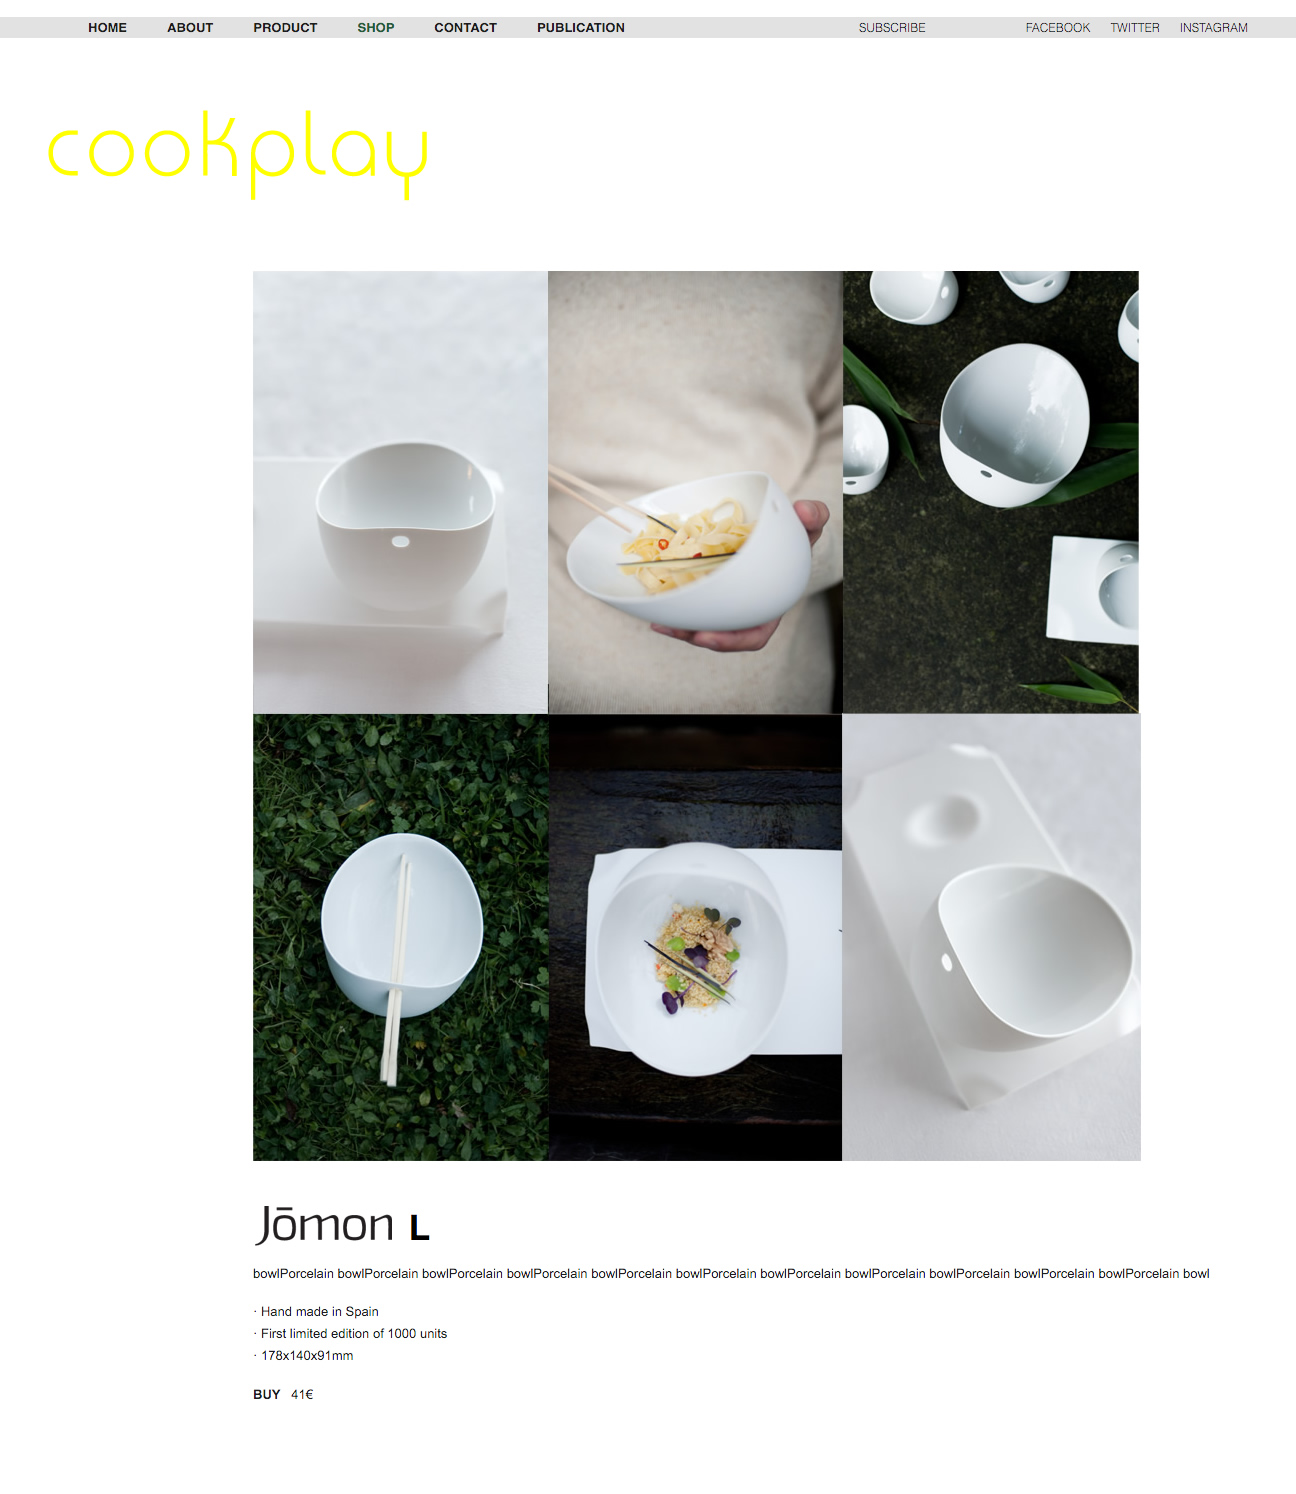 Cookplay. Product